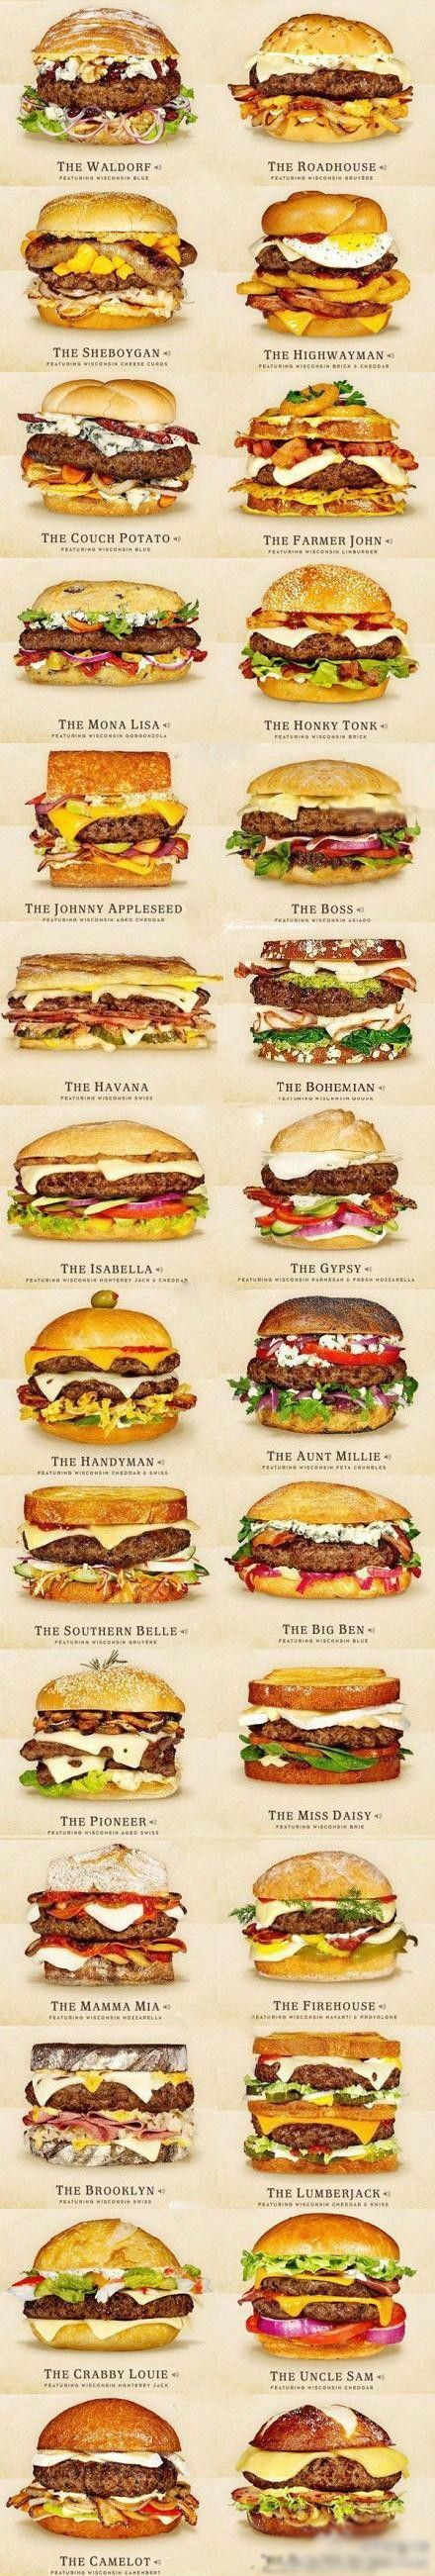 Cheeseburger ideas!